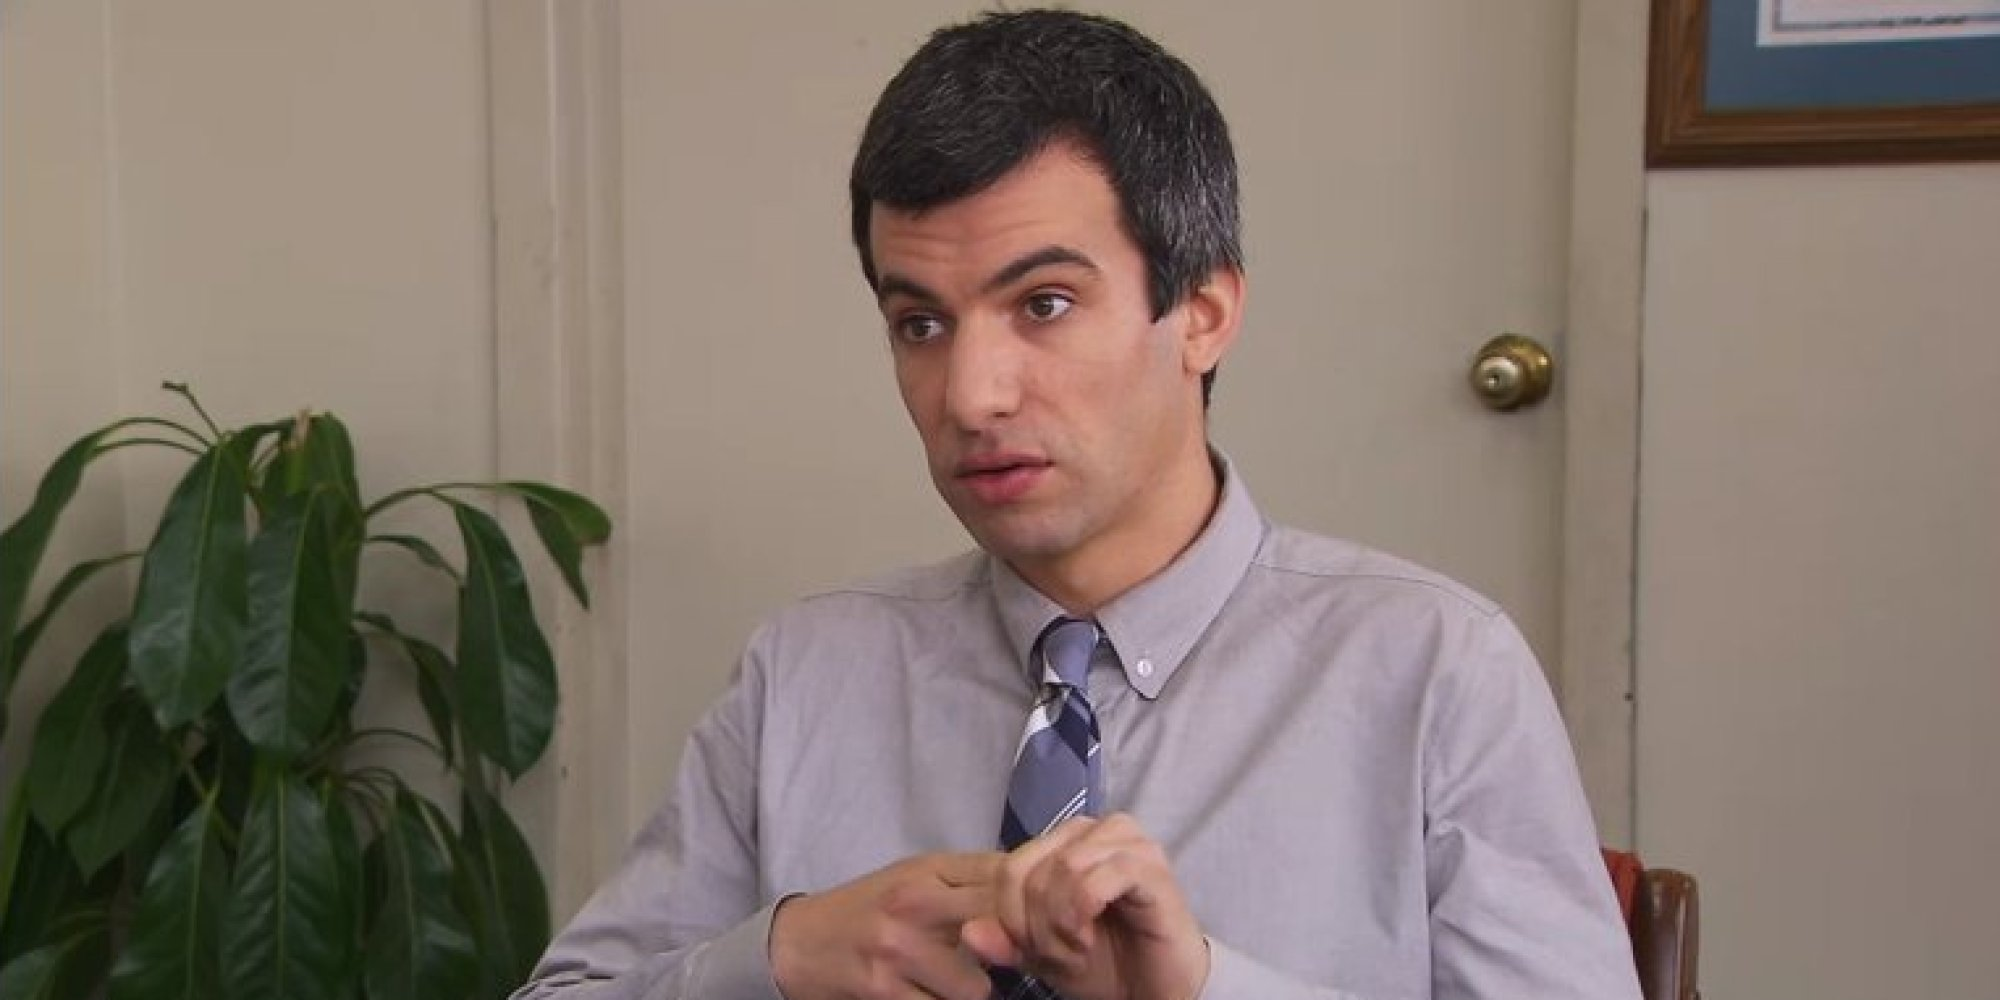 New 'Nathan For You' Stunt Counts On Pregnant Women Giving